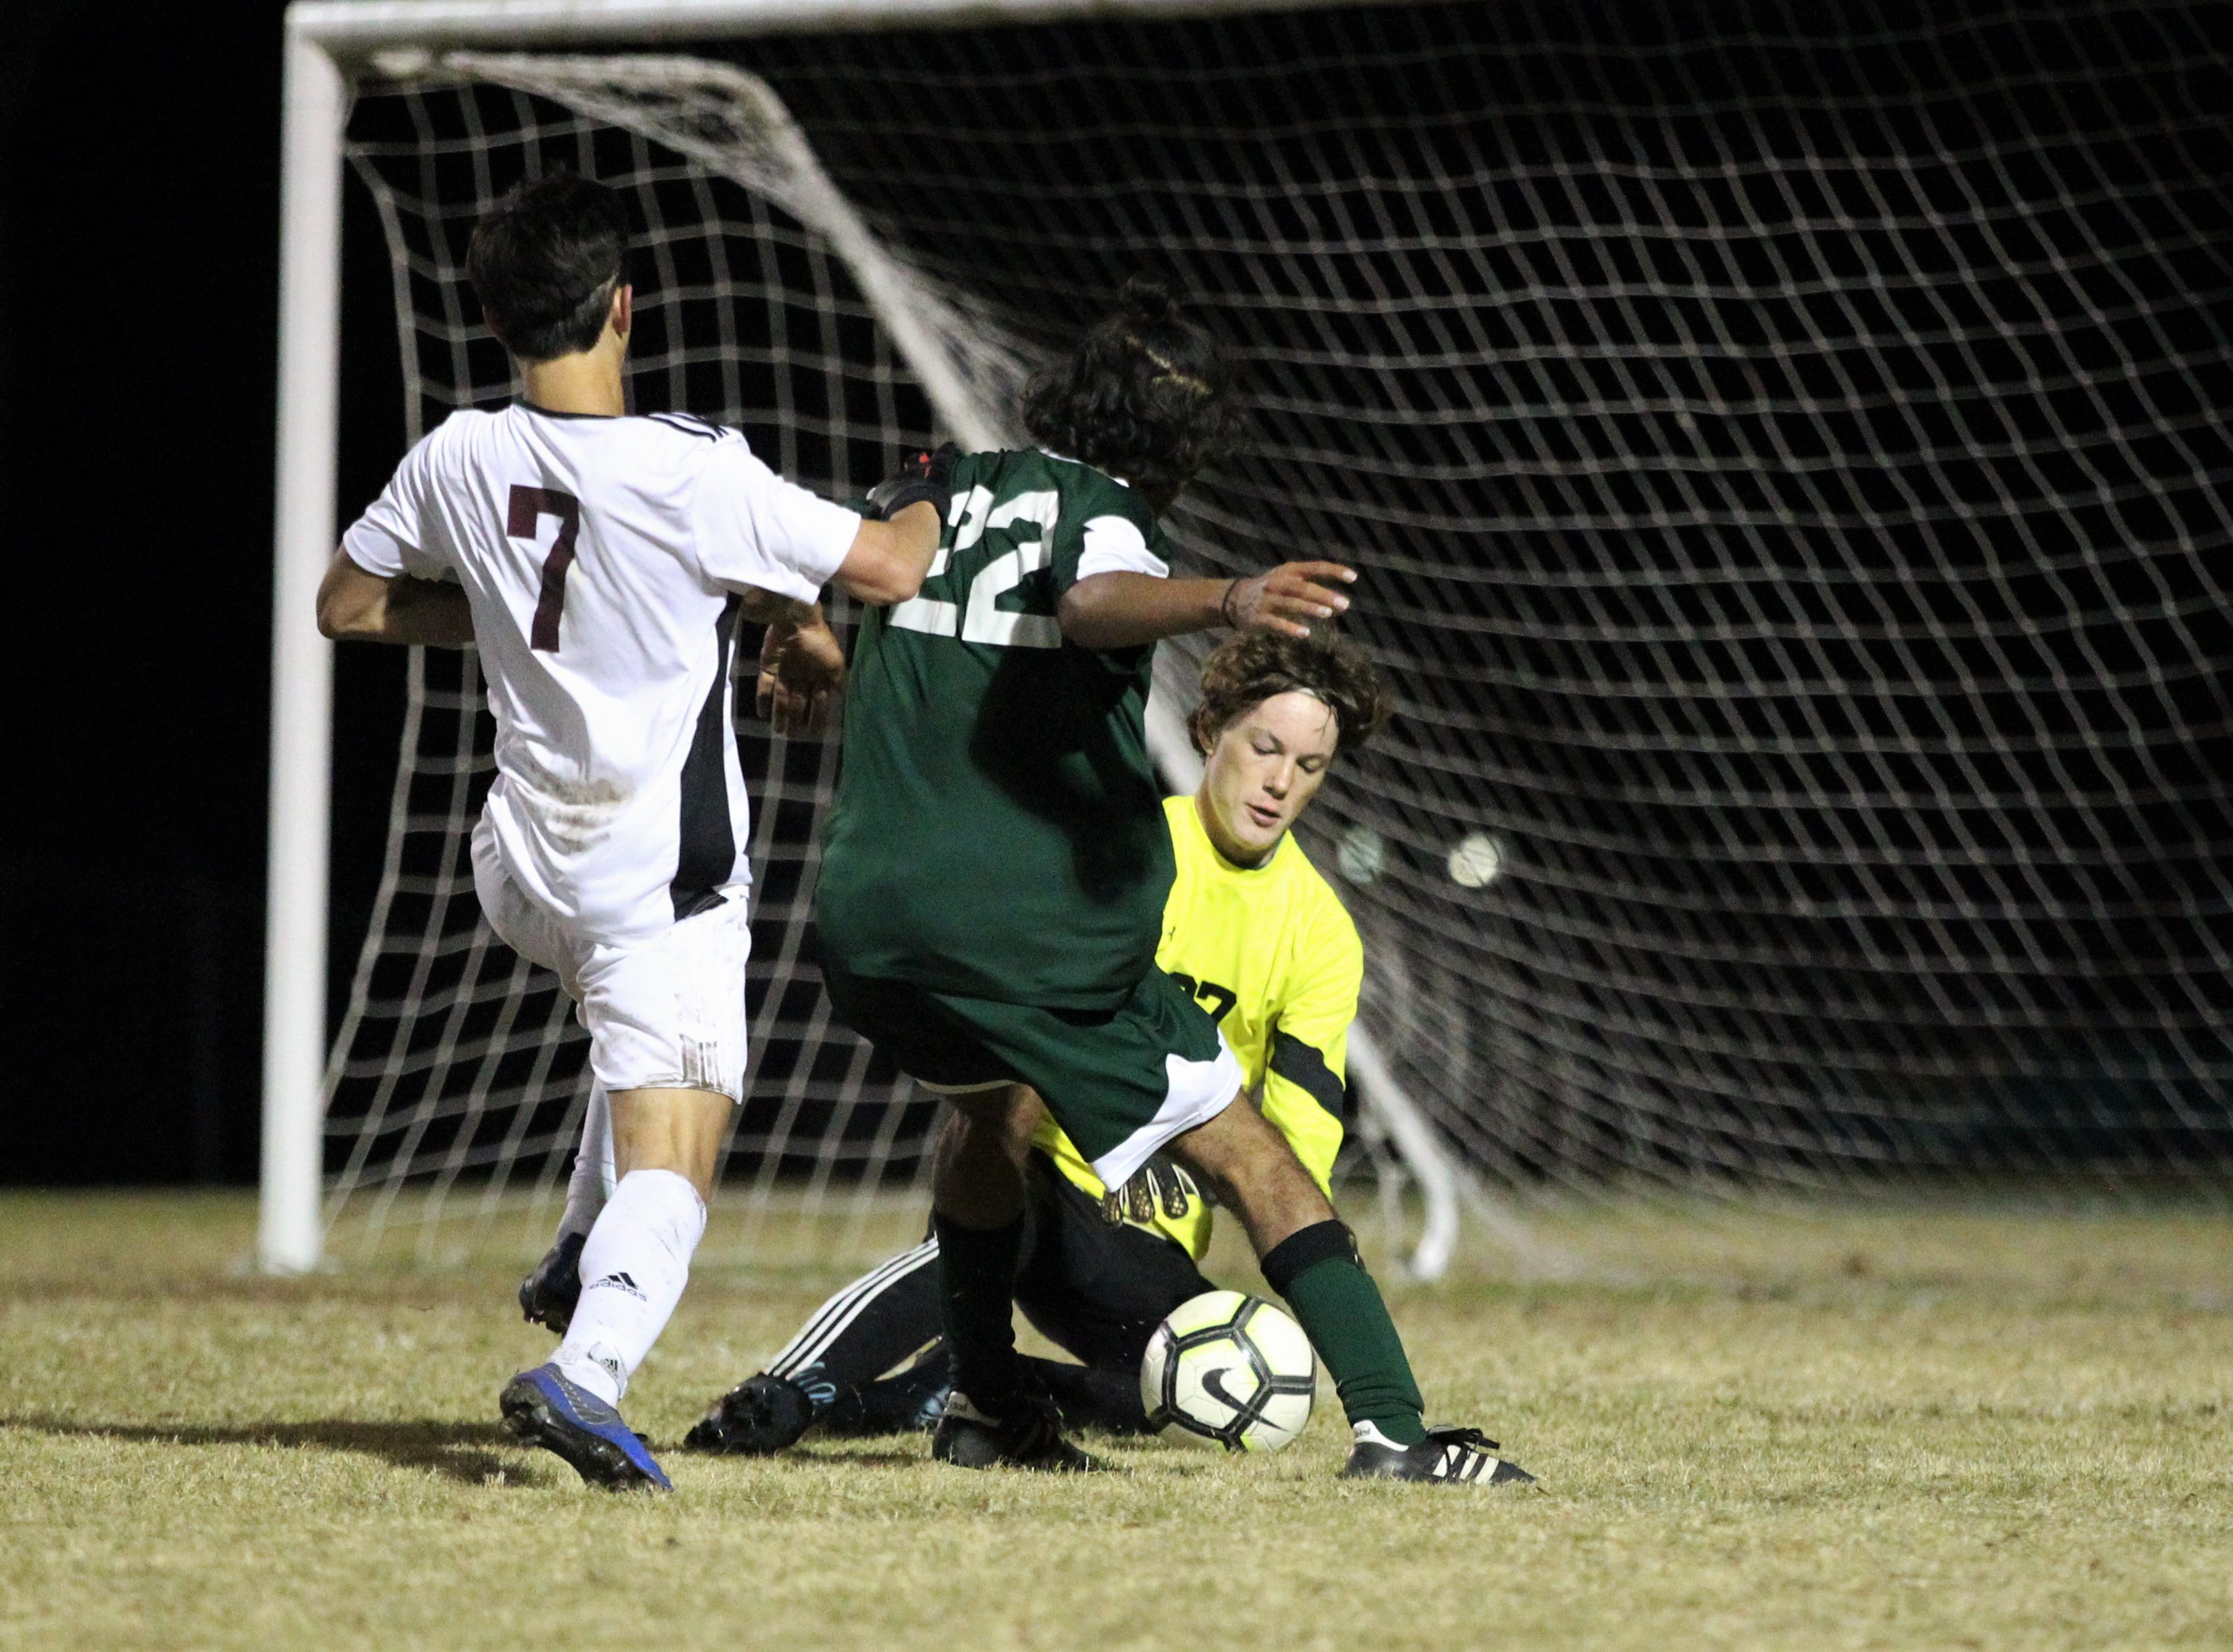 Lincoln keeper Aiden Reiding comes up with a save as Chiles' boys soccer team beat Lincoln 1-0 in a District 2-4A semifinal on Jan. 30, 2019.